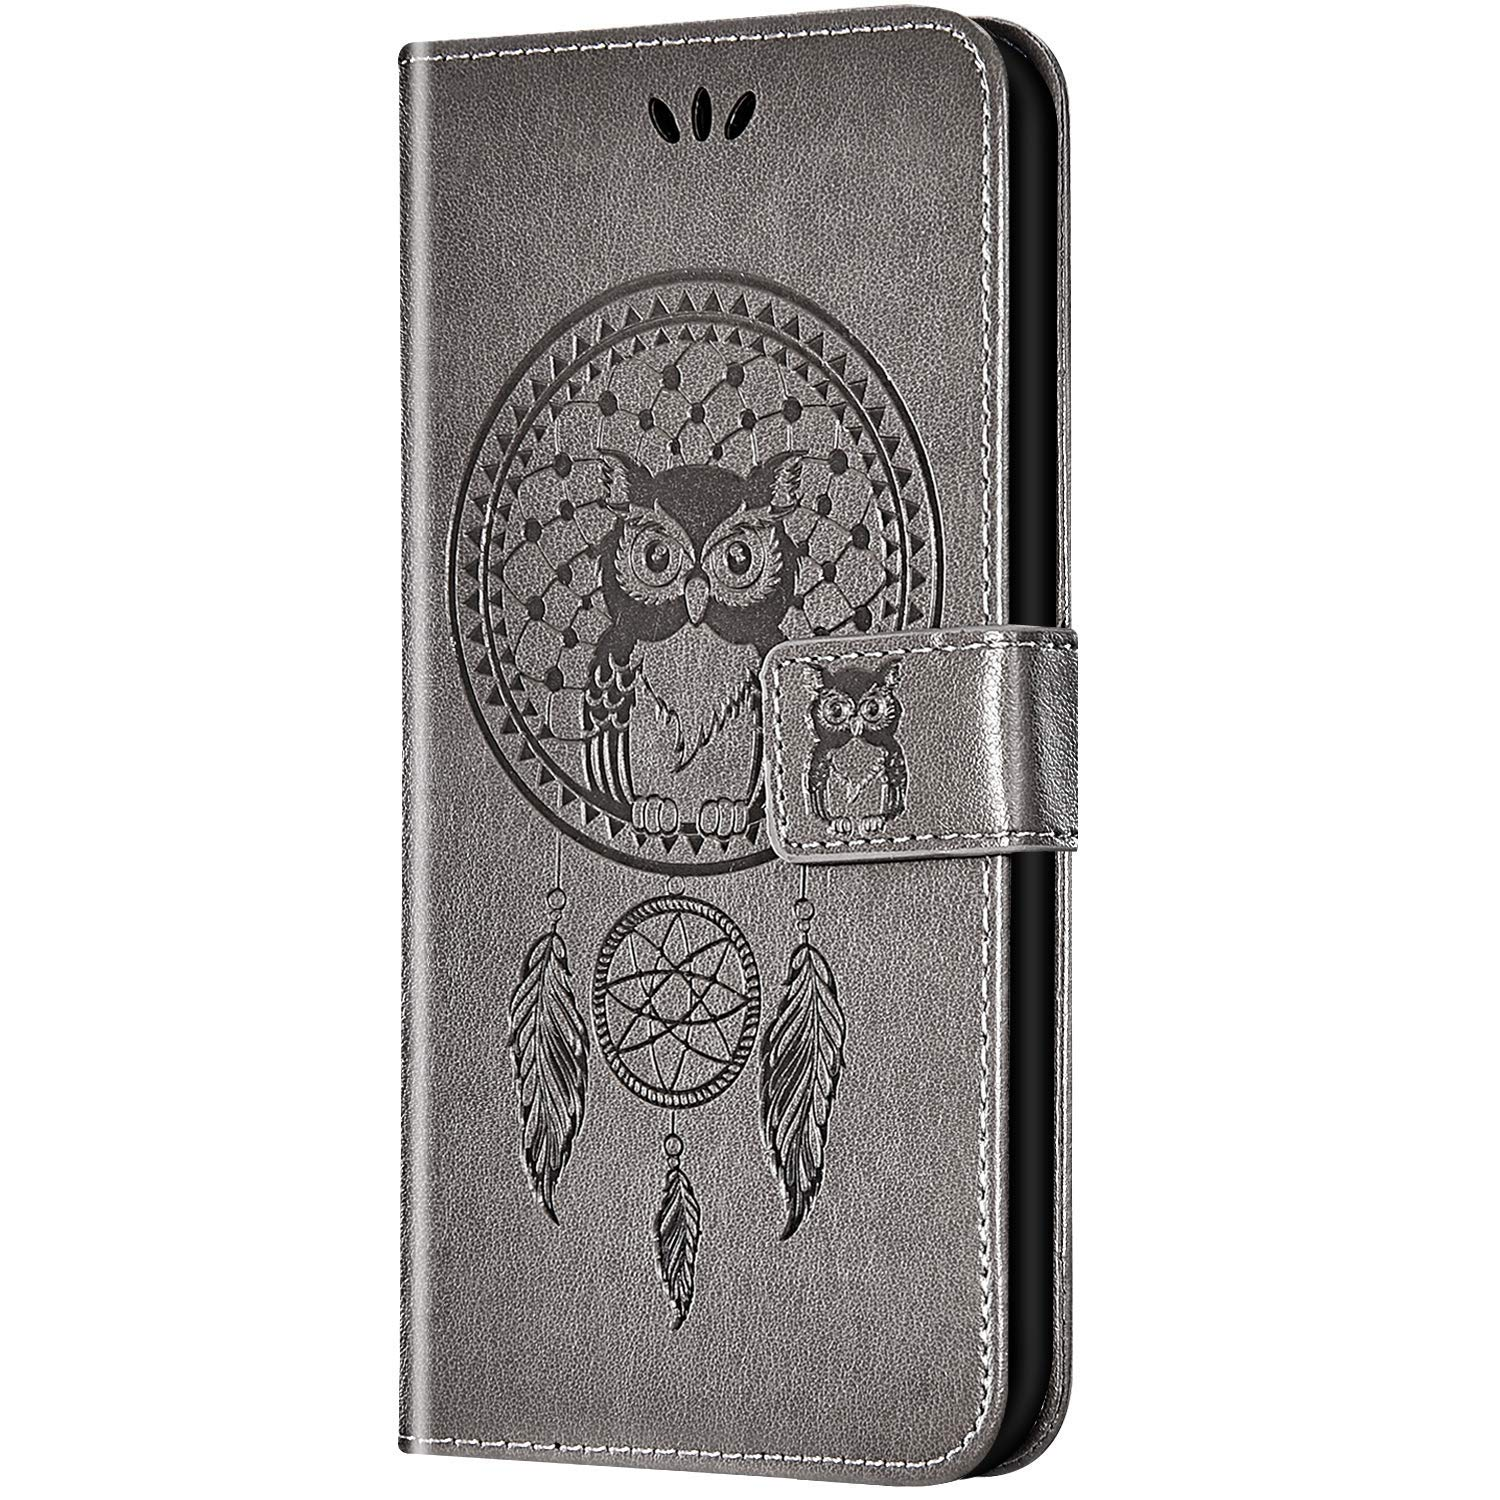 Case for Huawei P30 Flip Case Ultra Slim PU Leather Wallet with Card Holder/Slot and Magnetic Closure Shockproof Cartoon Animal Owl Embossed Protective Cover for Huawei P30,Gray by ikasus